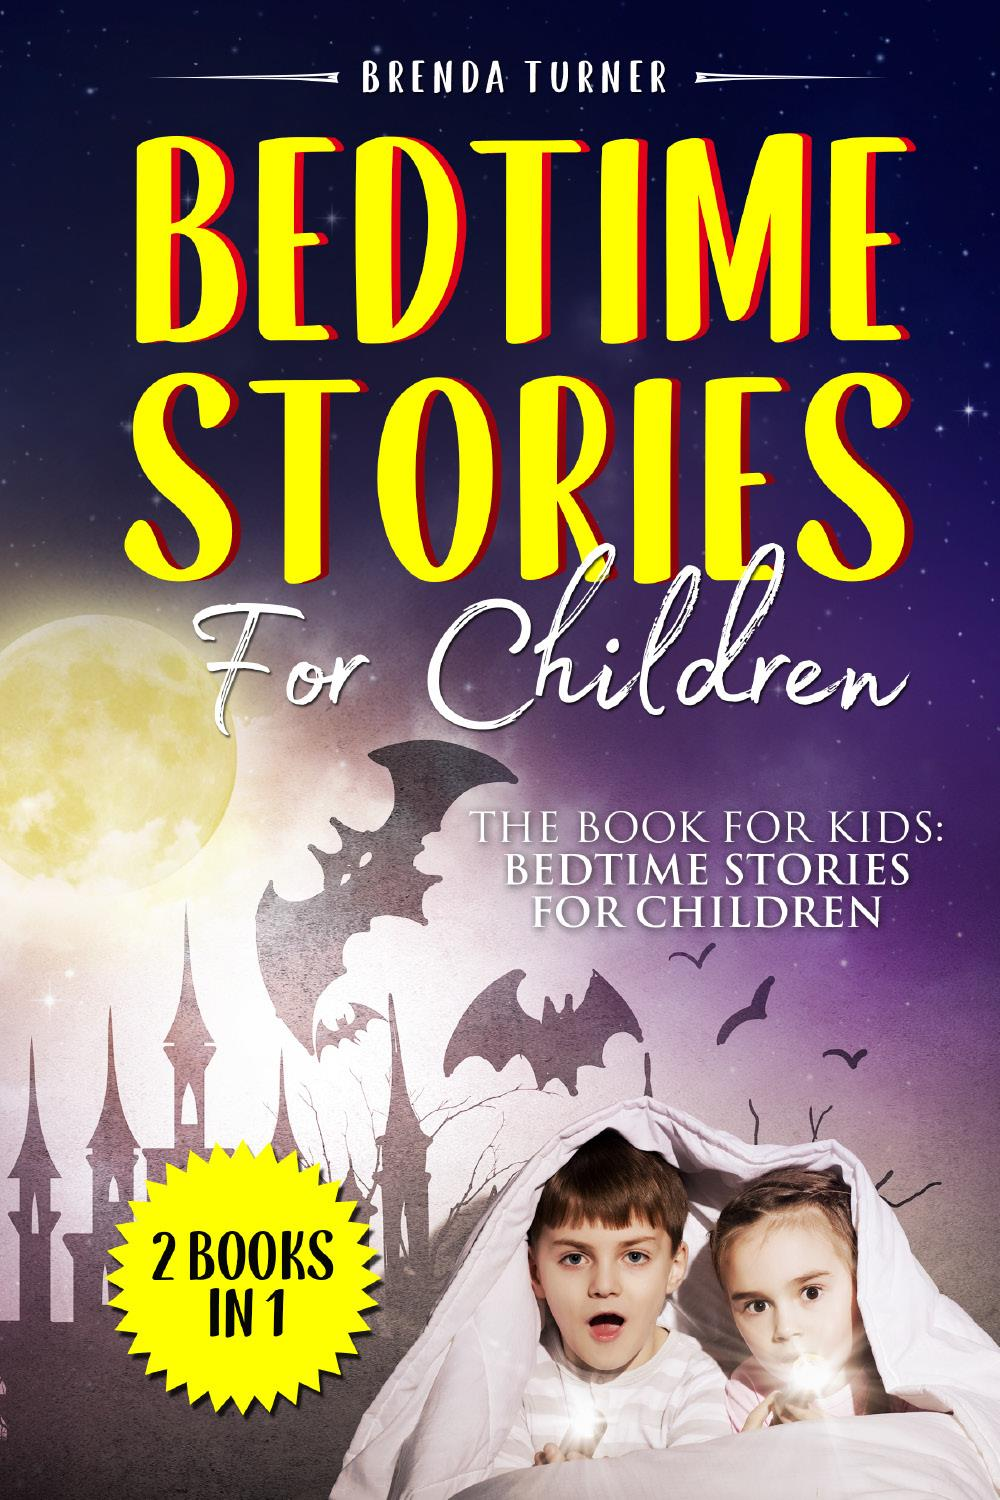 Bedtime Stories For Children (2 Books in 1). The Book for Kids: Bedtime Stories for Children